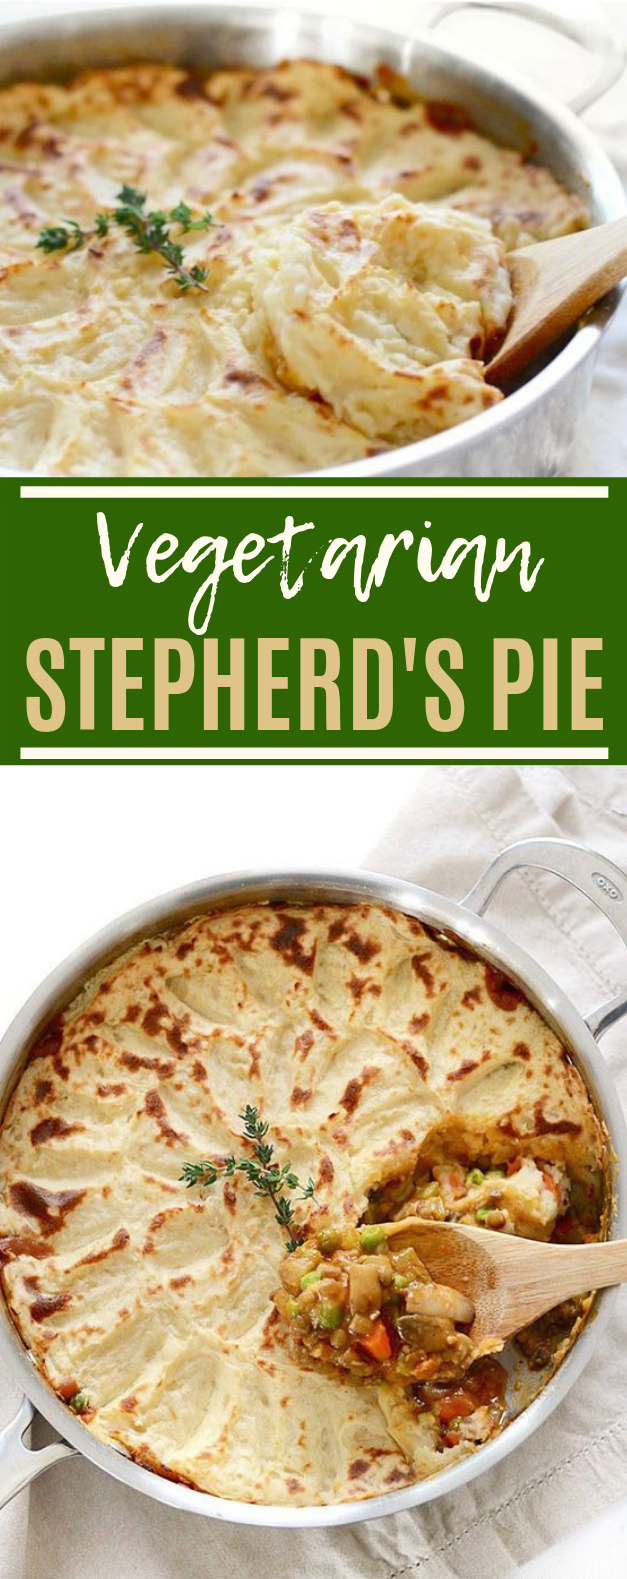 Vegetarian Shepherd's Pie #dinner #vegetarian